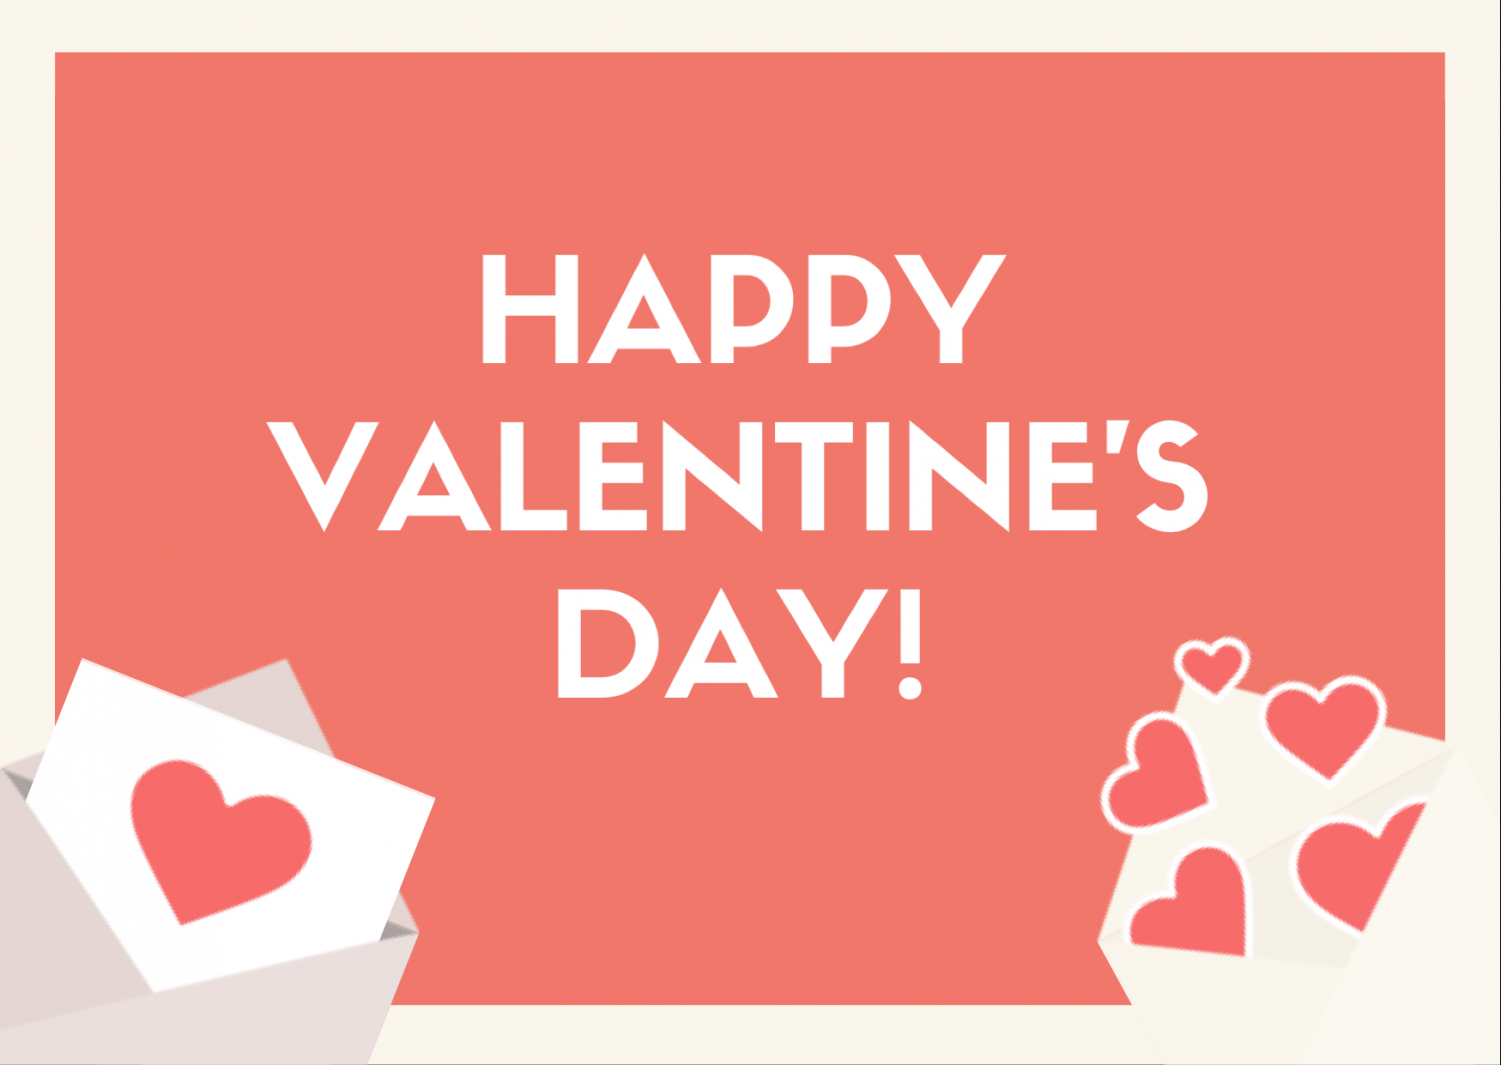 What are your Valentine's Day plans?